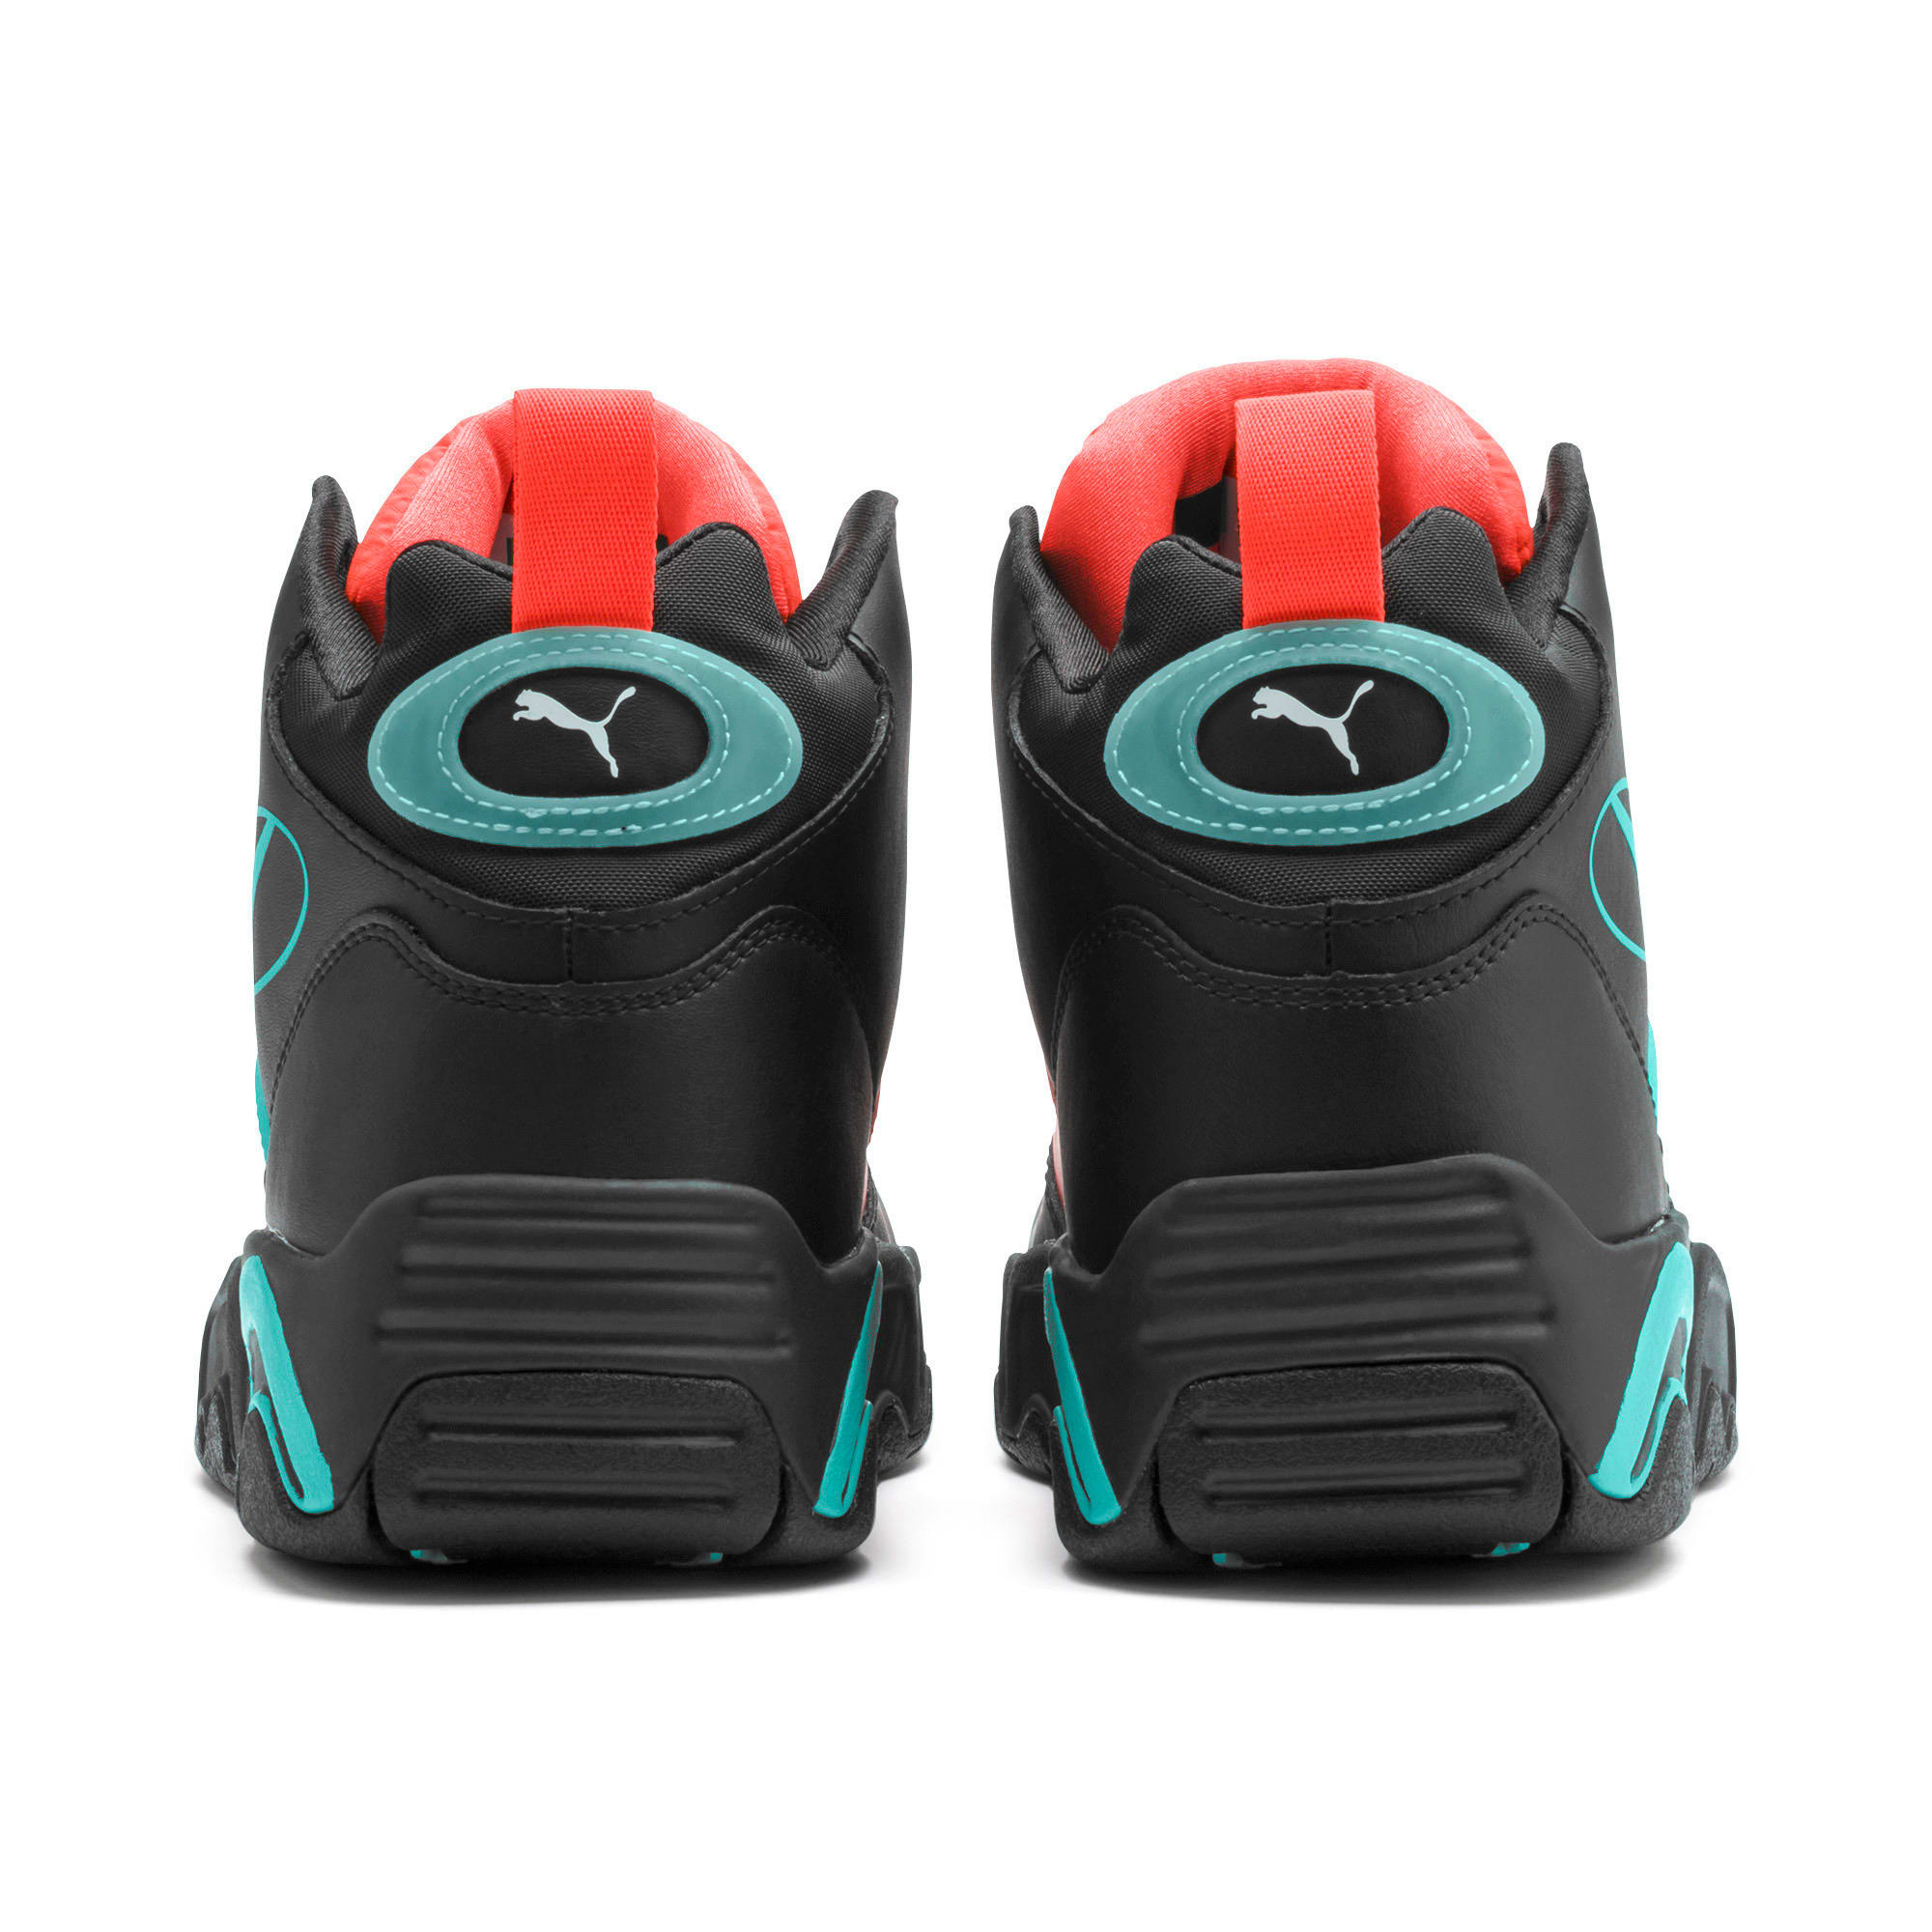 Thumbnail 5 of Source Mid Buzzer Trainers, P Blk-Nrgy Red-BlueTurquoise, medium-IND